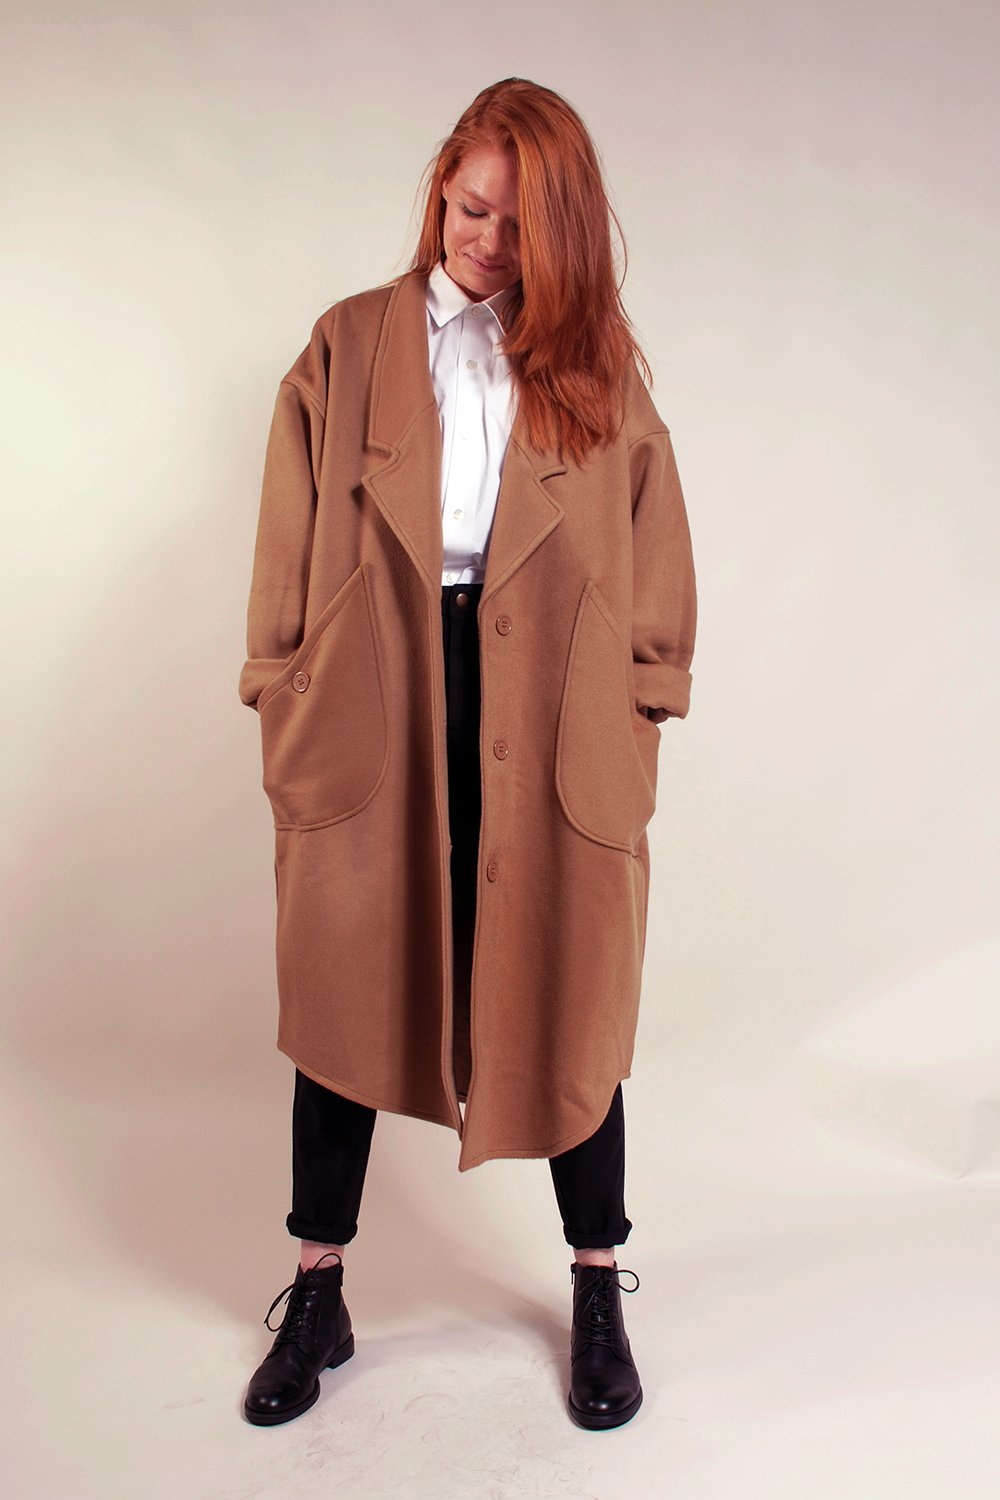 Kim Basinger in 9 1/2 weeks - soho gallery owner vibe -  overcoat. Shaped hem, rolled up sleeve, patch pockets.  One Size. Unlined. Great mid-weight coat! Very soft and heavy 96% Wool/4% Polyester.